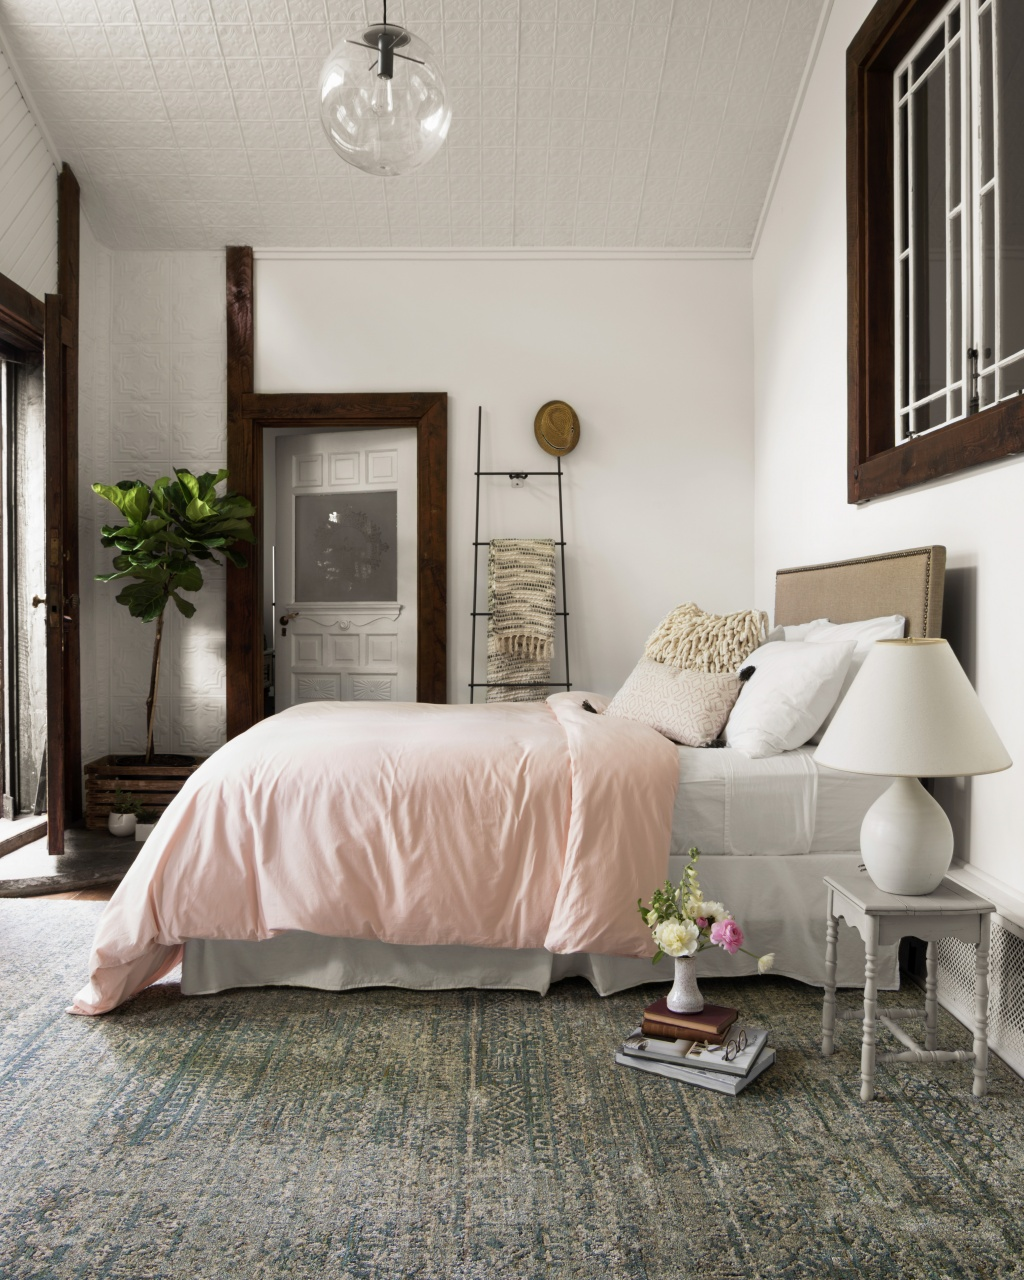 bohemian inspired bedroom with textures and layers